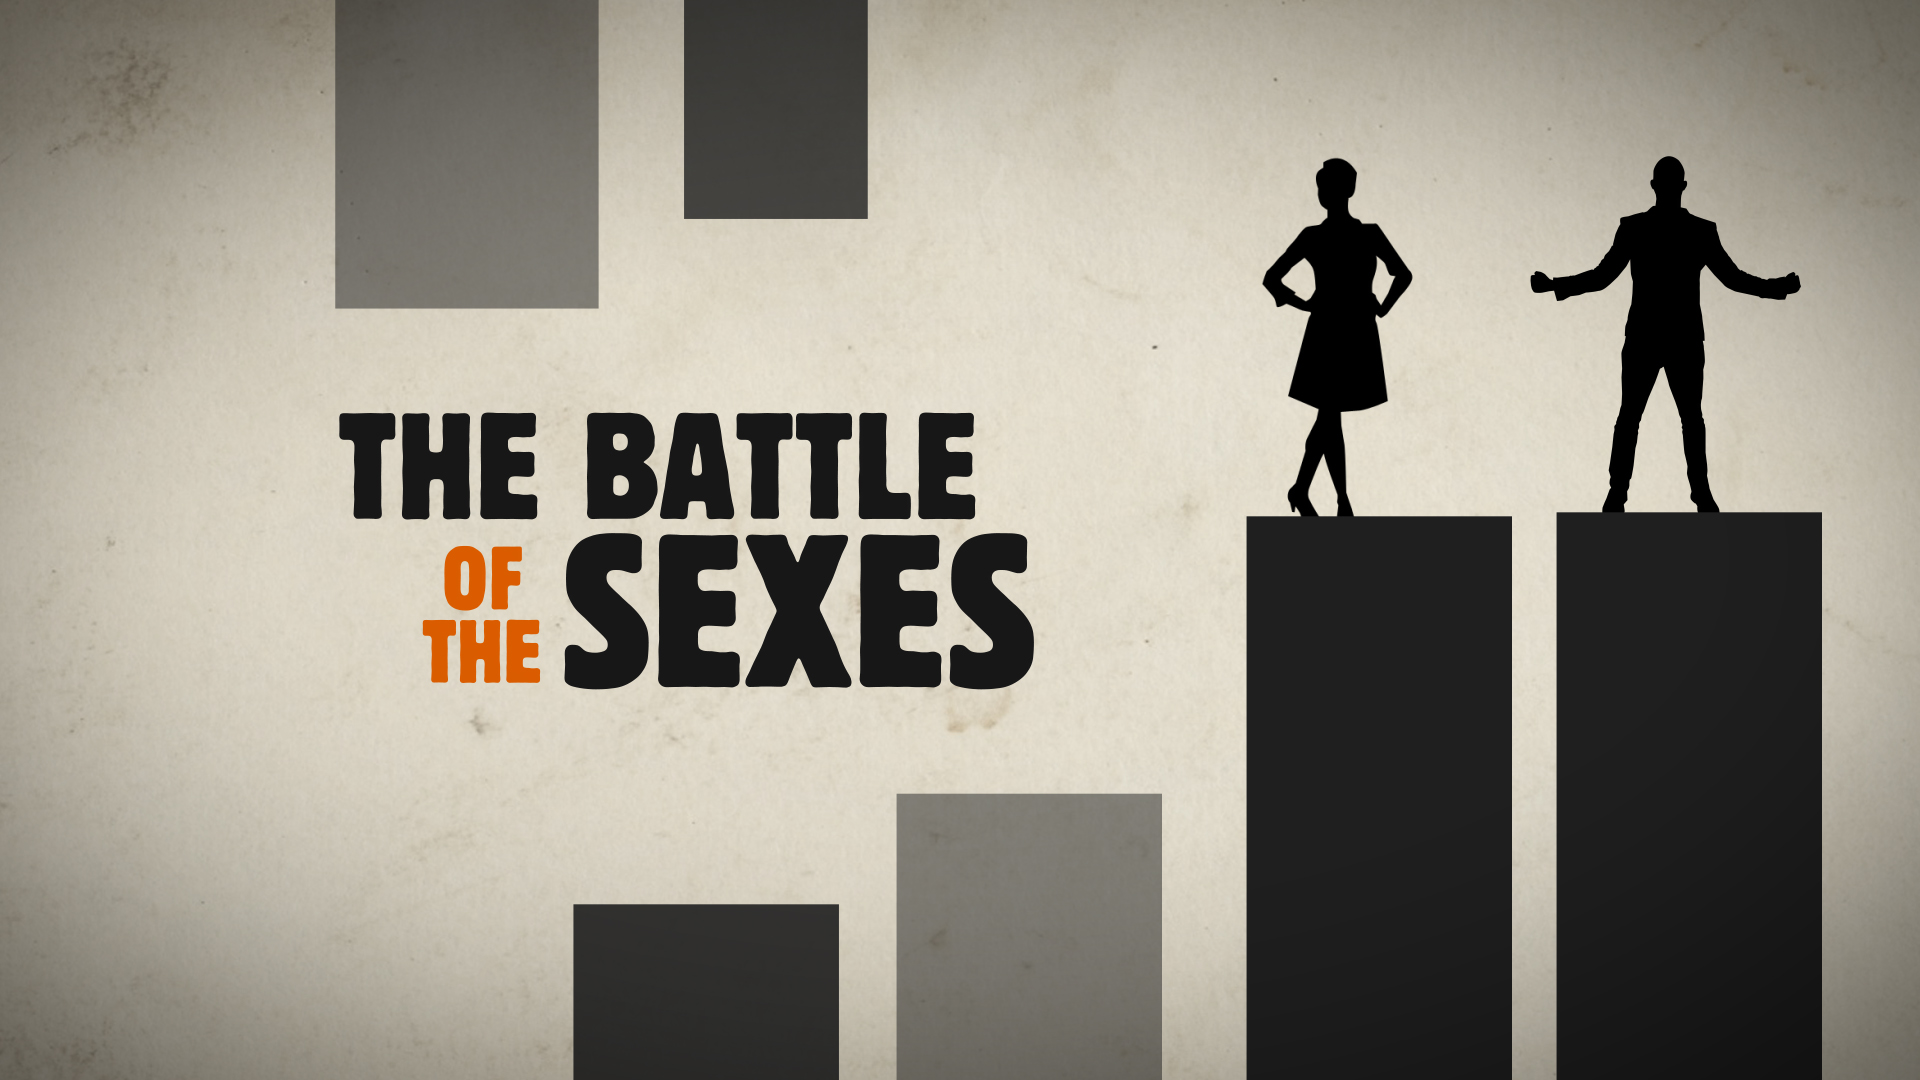 battle of the sexes essay Essays related to the battle of the sexes how to enjoy battle of the sexes i choose the third poster because it demonstrates something that normally doesn't get much attention.